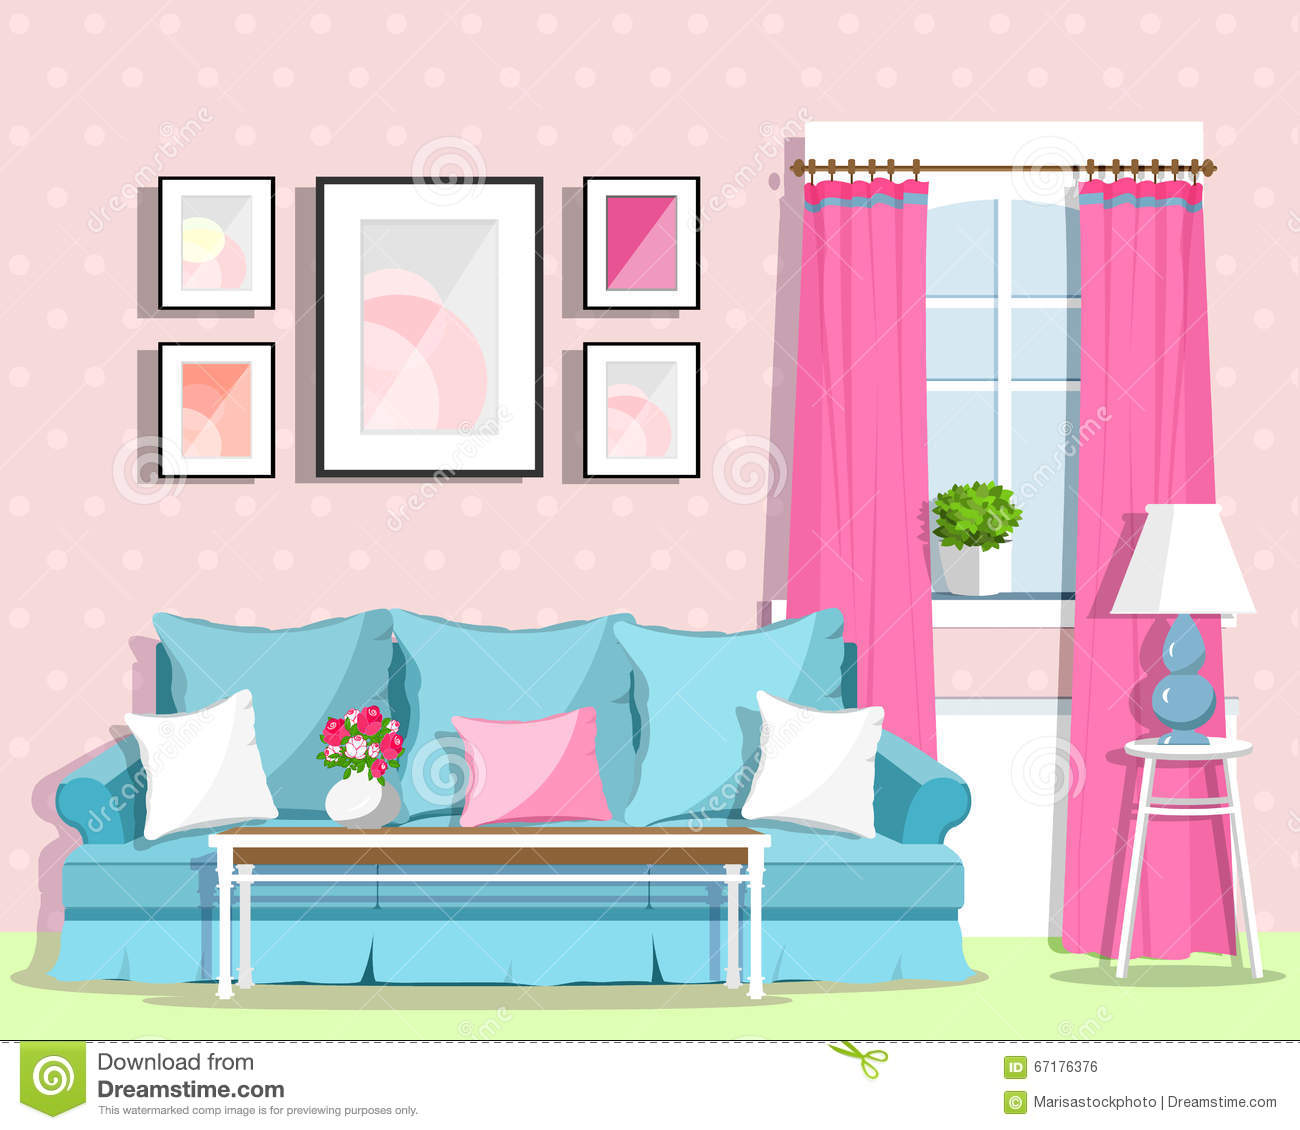 No Rooms Colorful Furniture: Cute Colorful Living Room Interior Design With Furniture